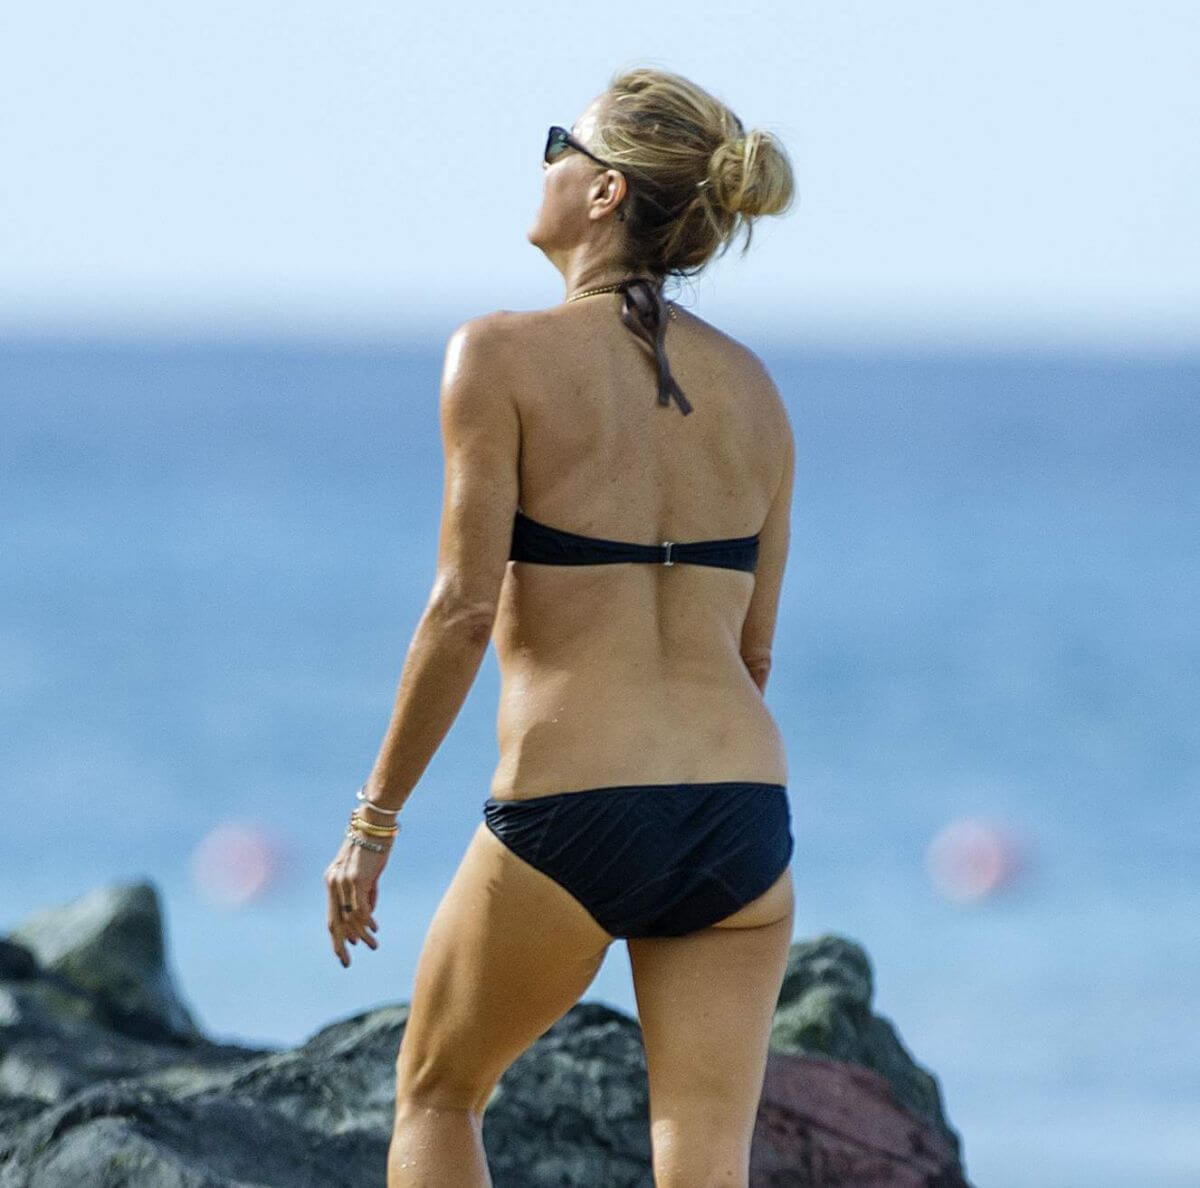 Bikini Tea Leoni naked (77 photo), Topless, Sideboobs, Boobs, in bikini 2019